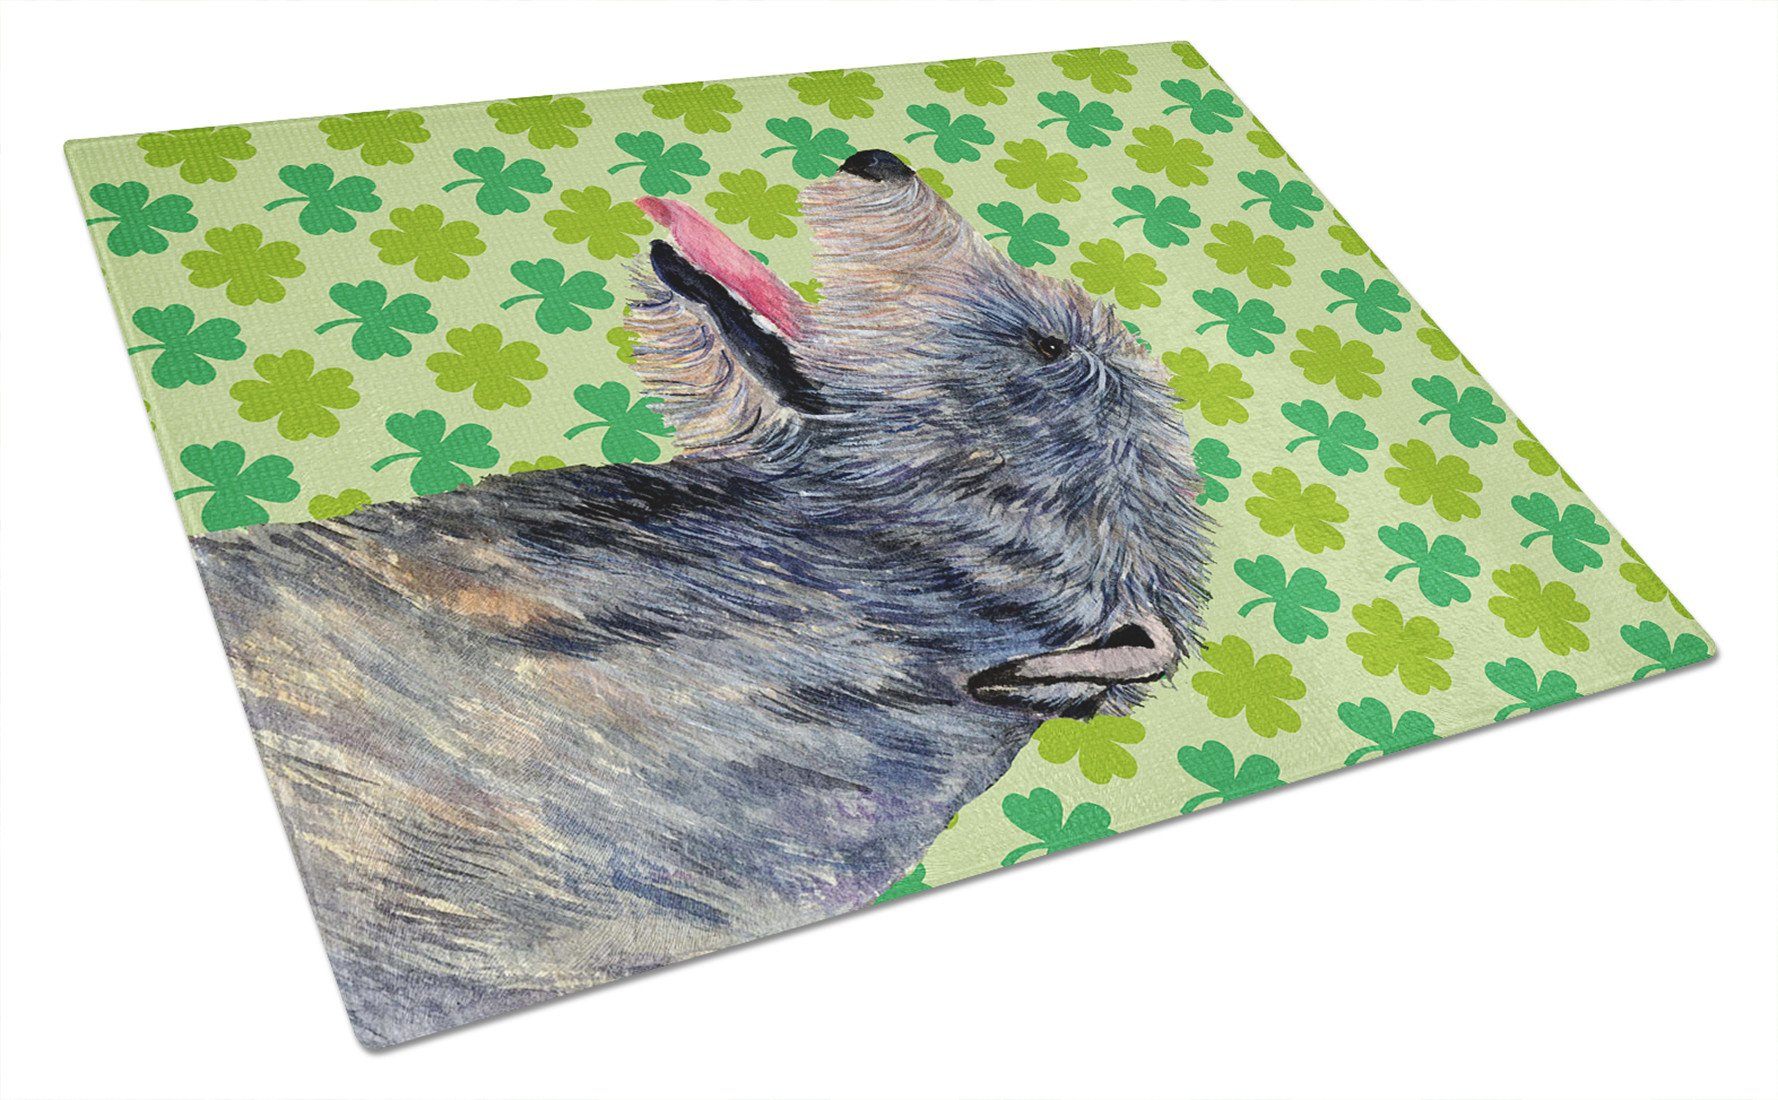 Irish Wolfhound St. Patrick's Day Shamrock Portrait Glass Cutting Board Large by Caroline's Treasures